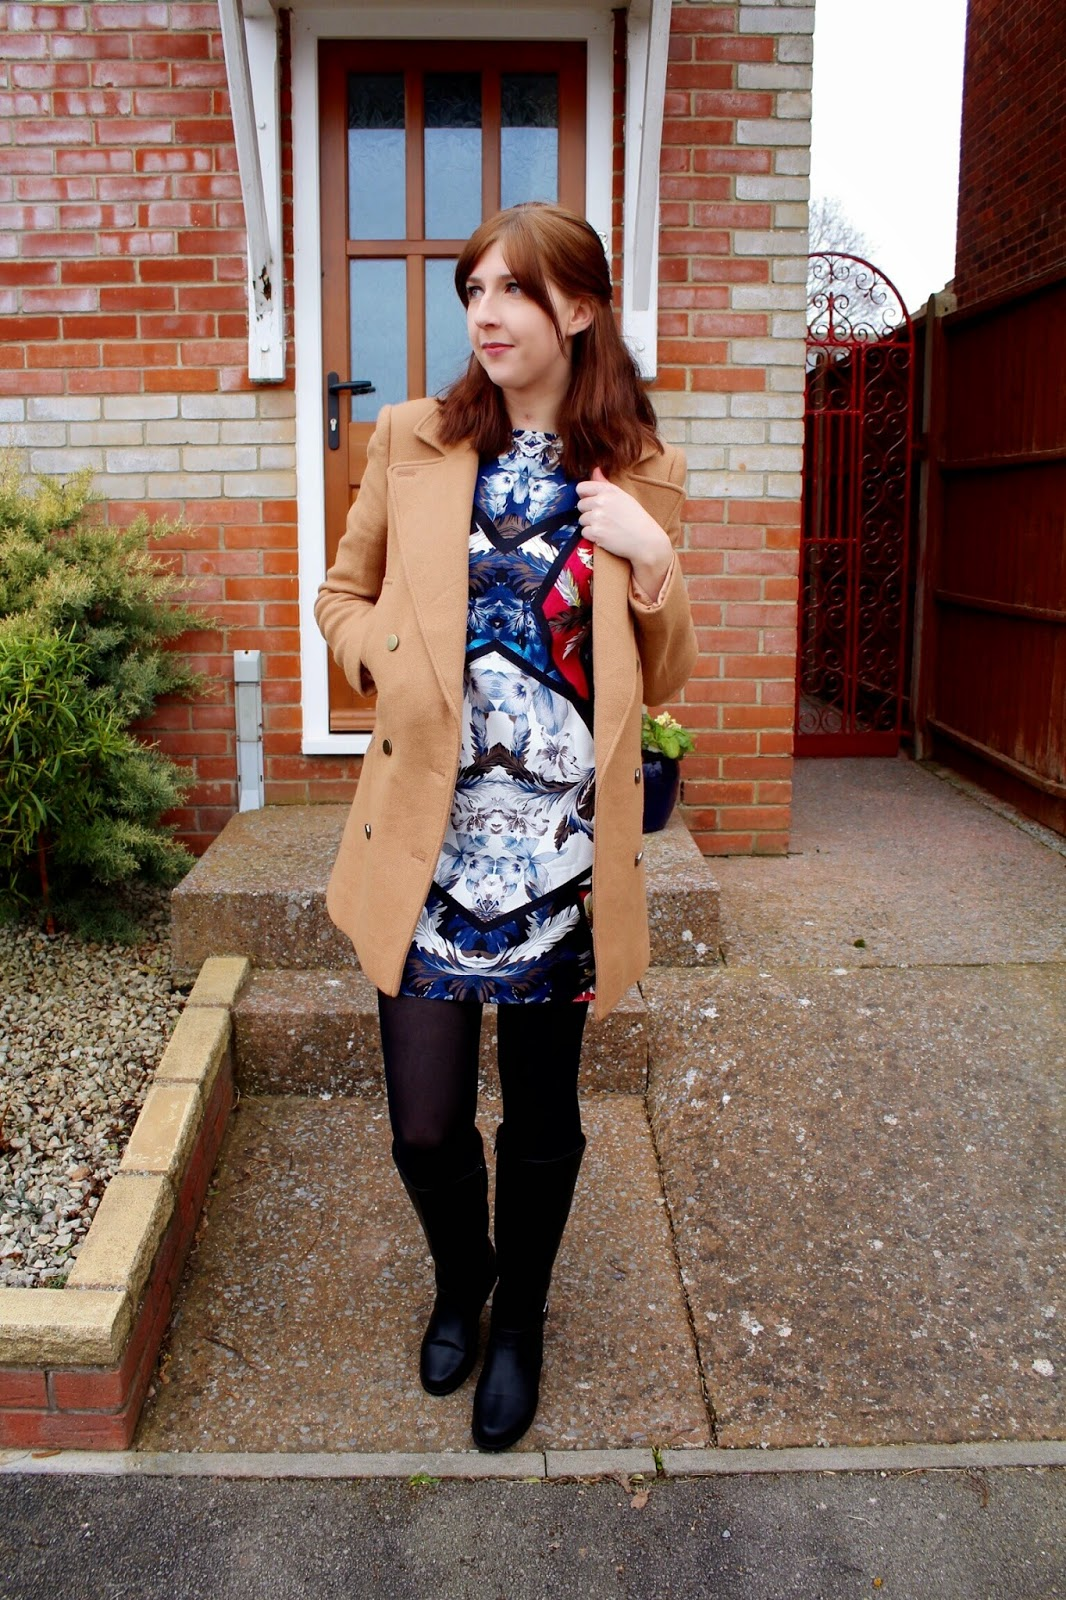 asos, asseenonme, halcyonvelvet, ootd, outfitoftheday, lotd, lookoftheday, wiw, whatimwearing, primark, kneehighboots, graphicprintdress, tshirtdress, fbloggers, fashion, fashionbloggers, camelcoat, fashionblogger, fblogger